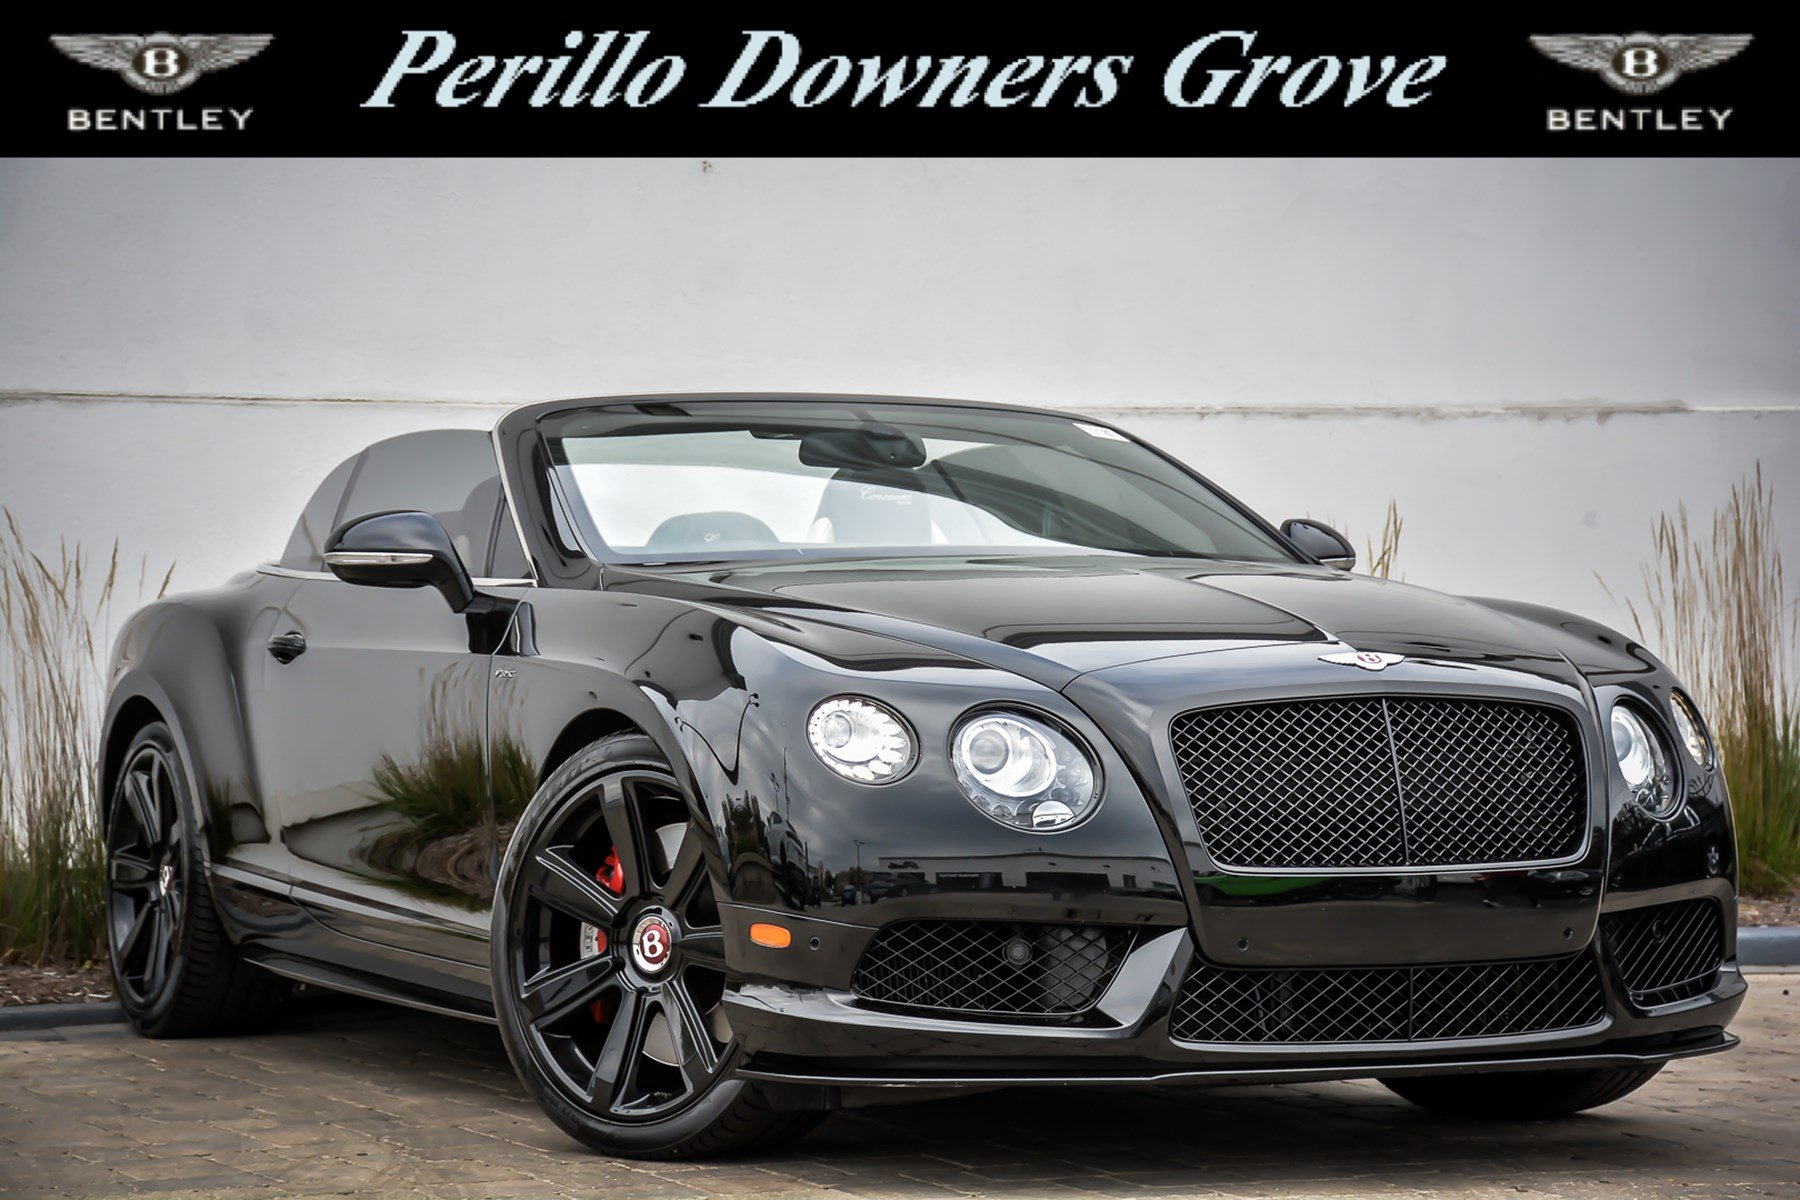 Pre Owned 2015 Bentley Continental GTC V8 S Concourse Series Black